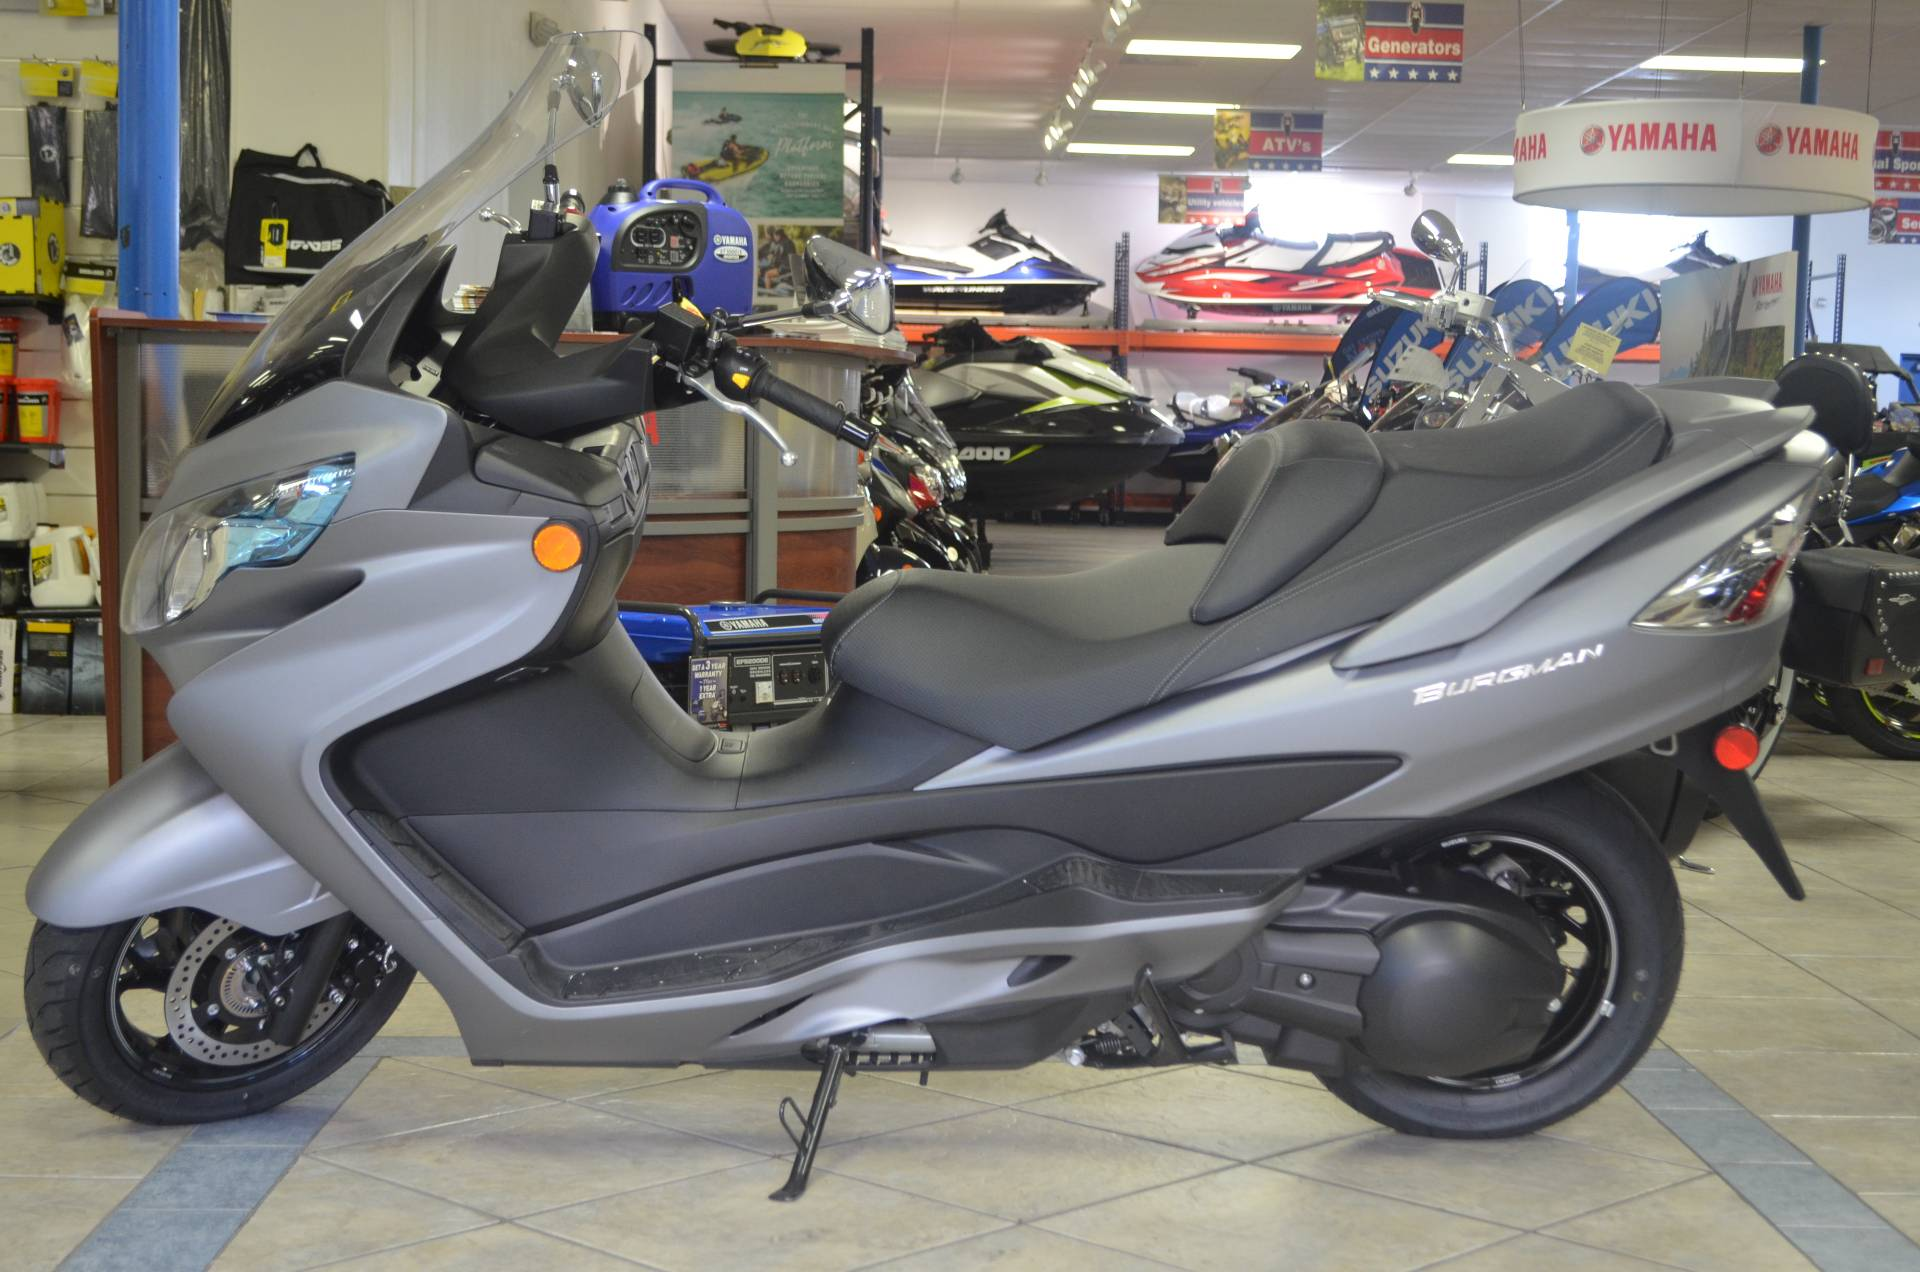 2016 Suzuki Burgman 400 ABS in Miami, Florida